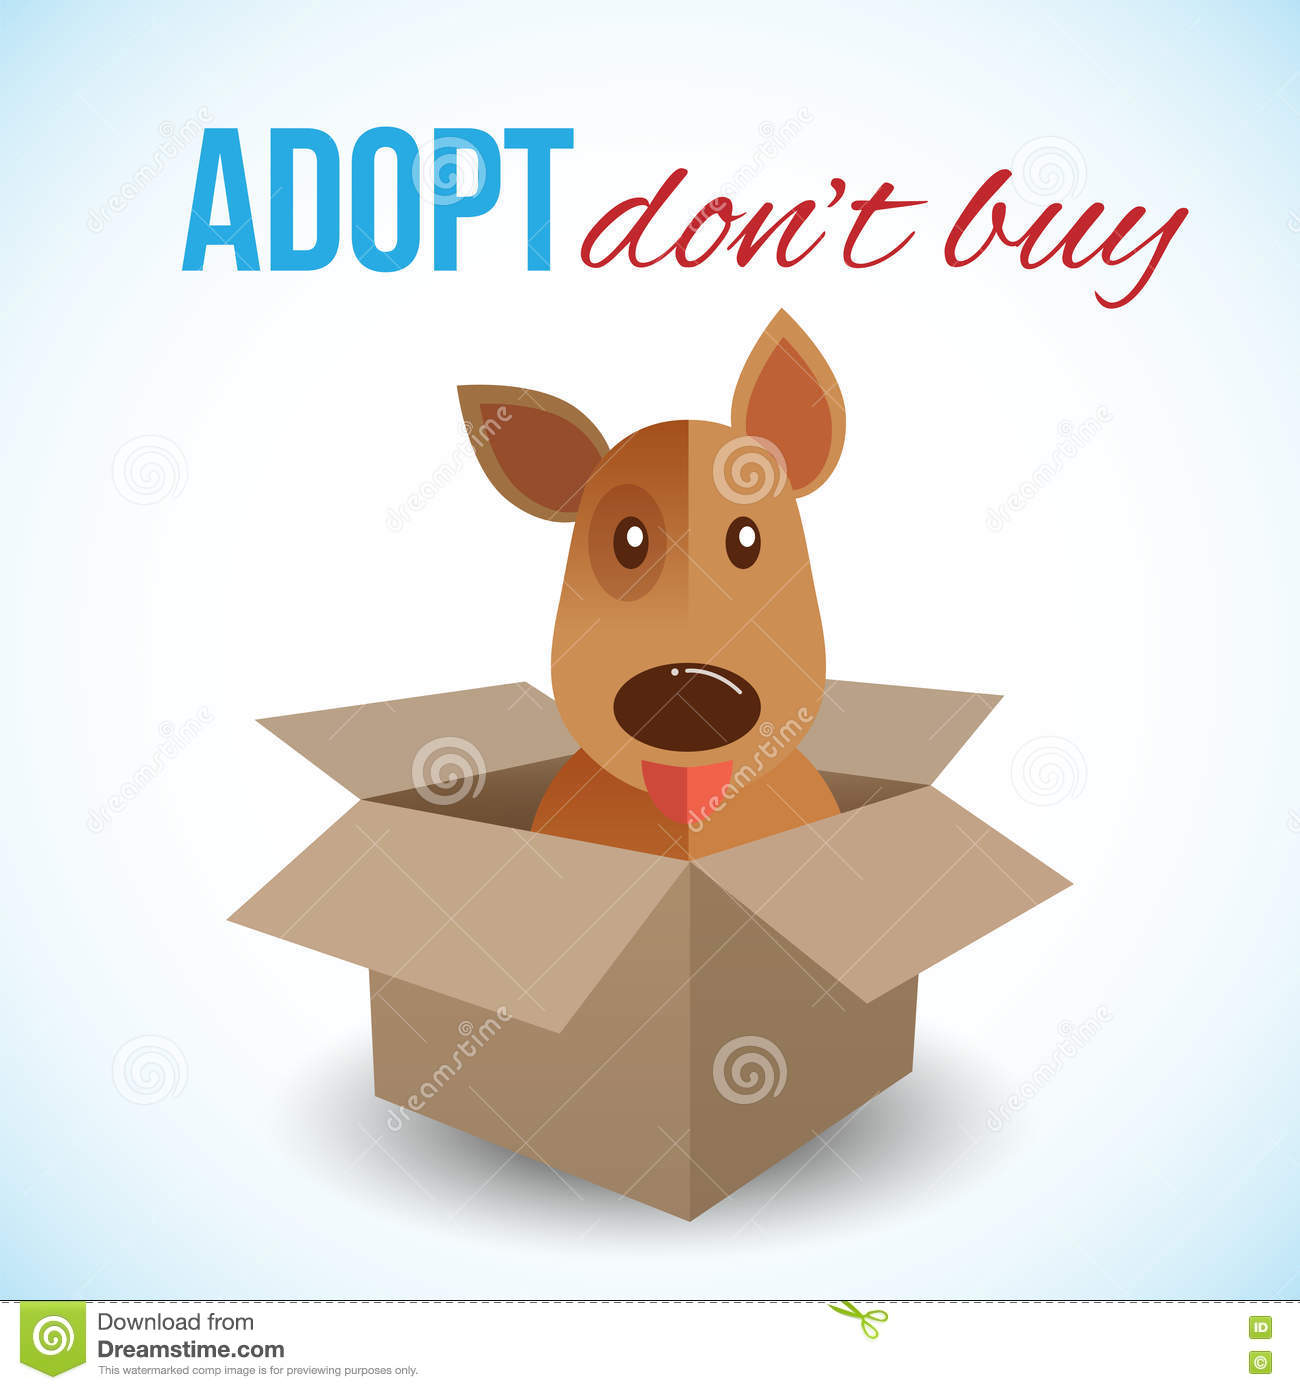 Cute dog in a box with Adopt Don t buy text. Homeless animals concept, pets adoption theme. Vector illustration